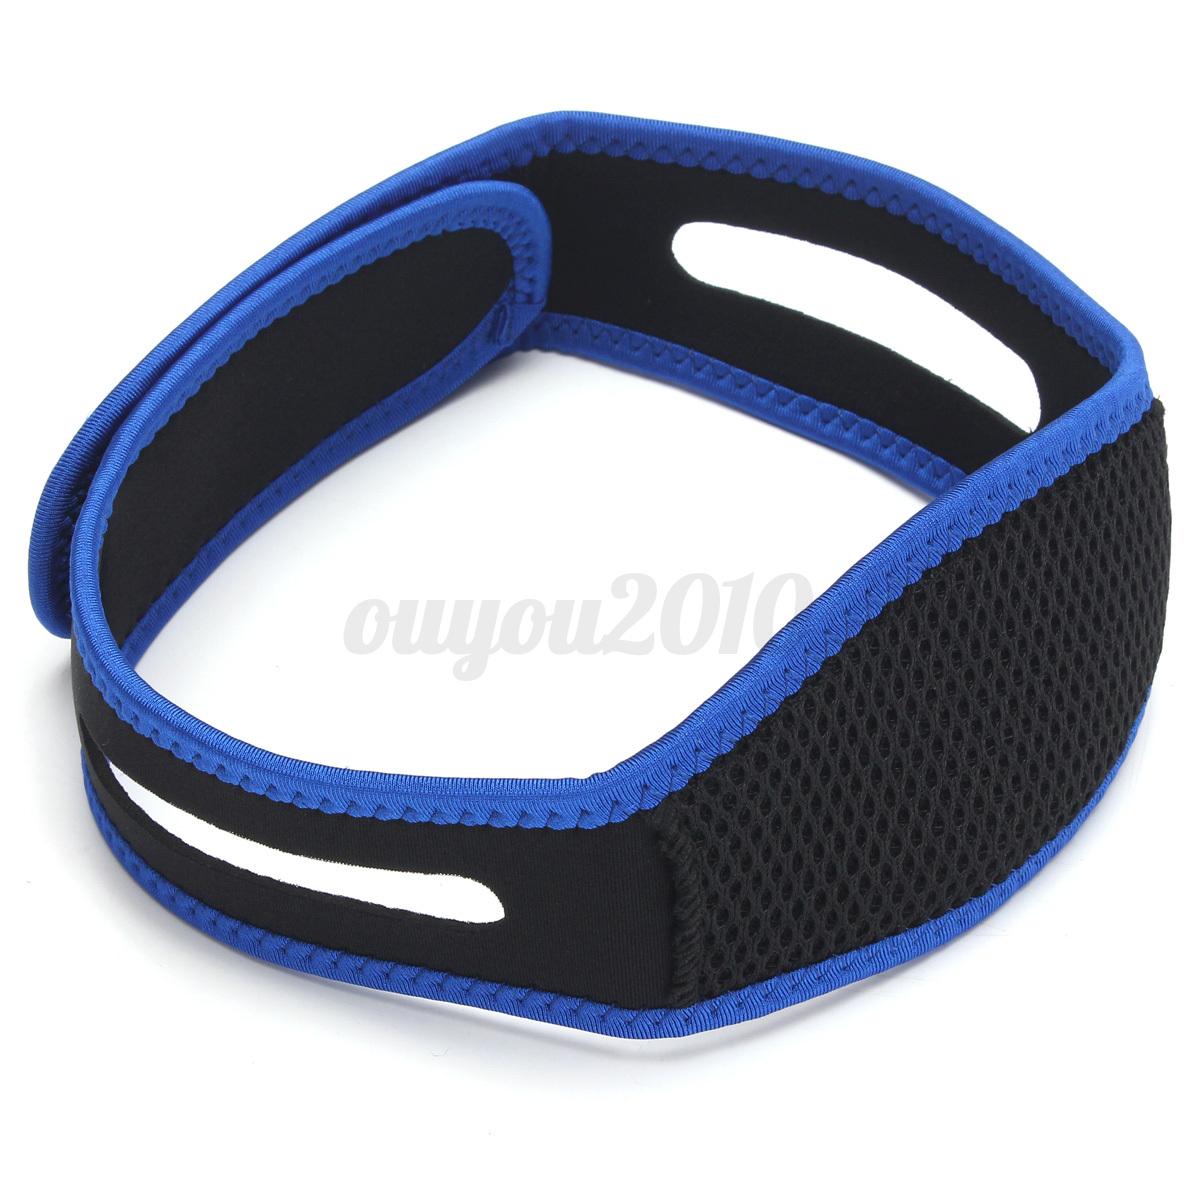 Sleep Aid Stop Snoring Stop Snoring Belt Sleep Aid Anti Snore Silicone Nose Clip